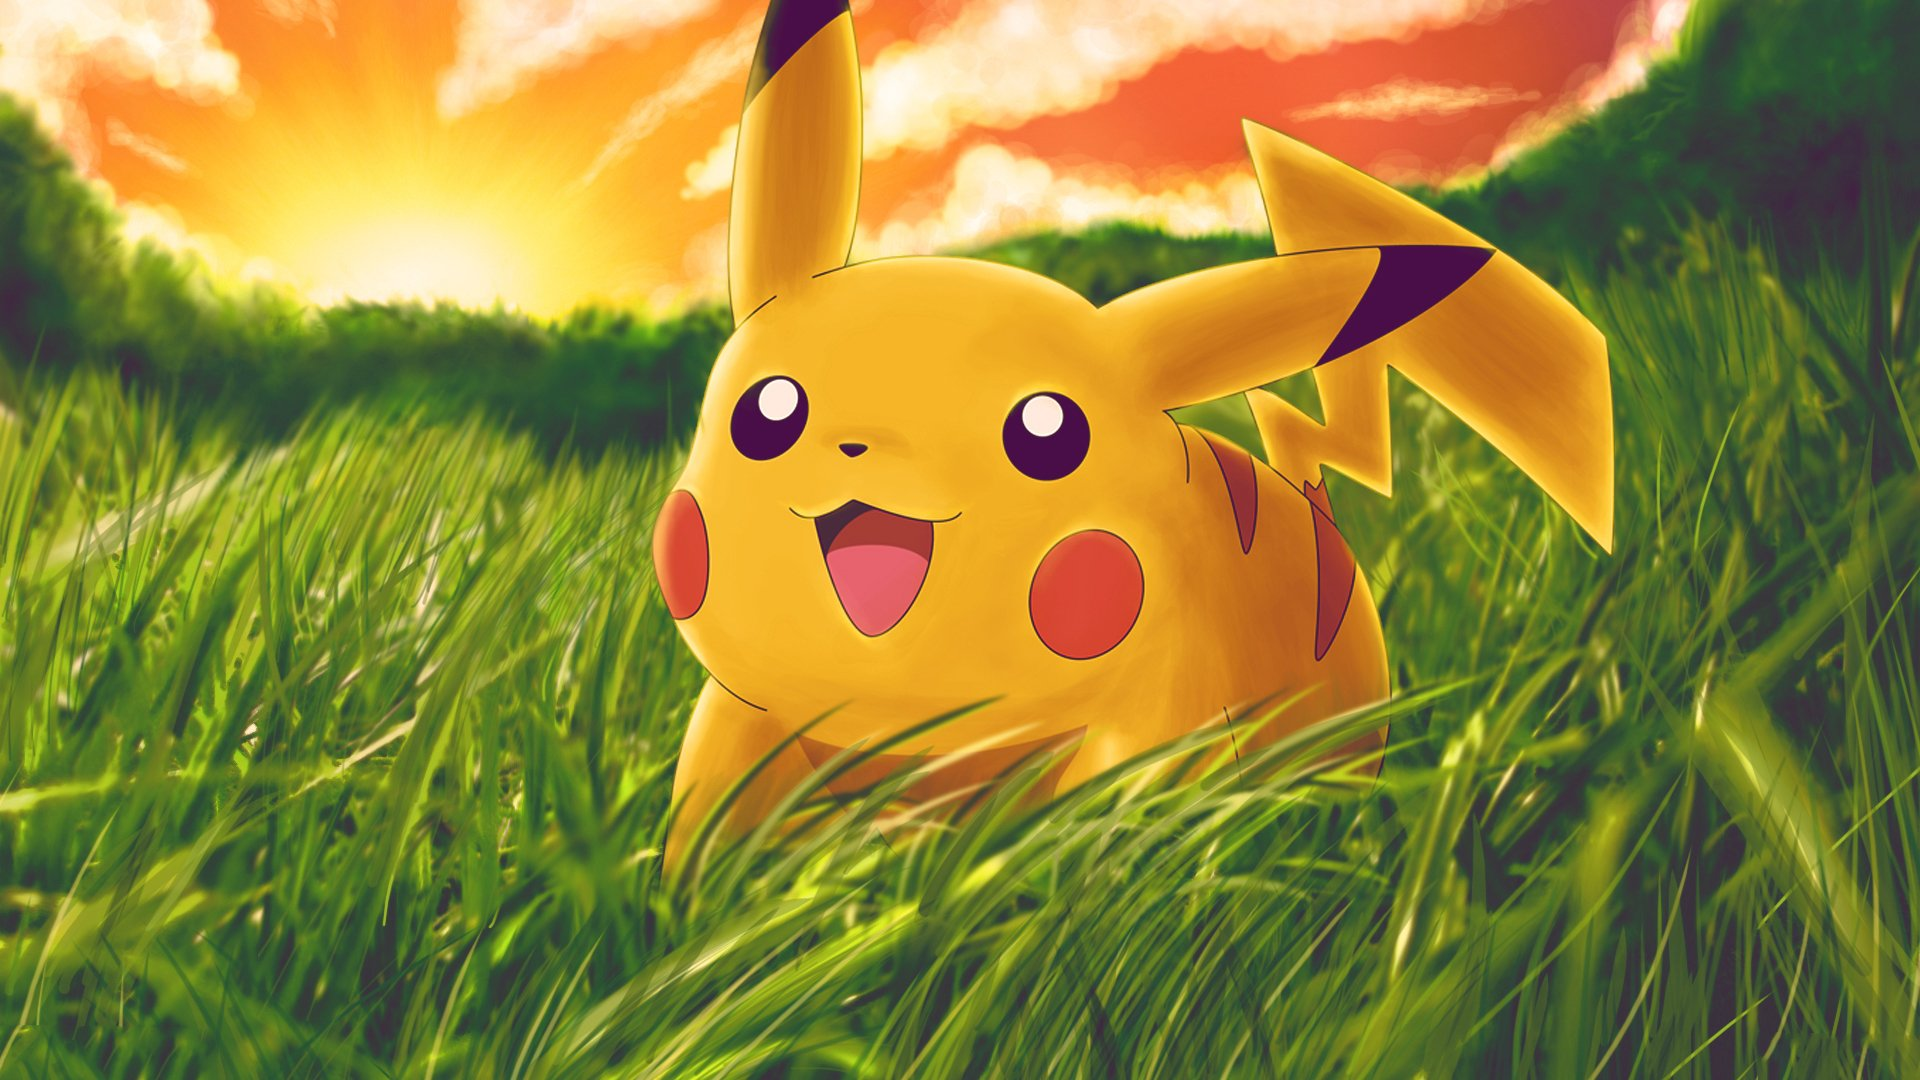 pikachu desktop hd wallpaper 64927